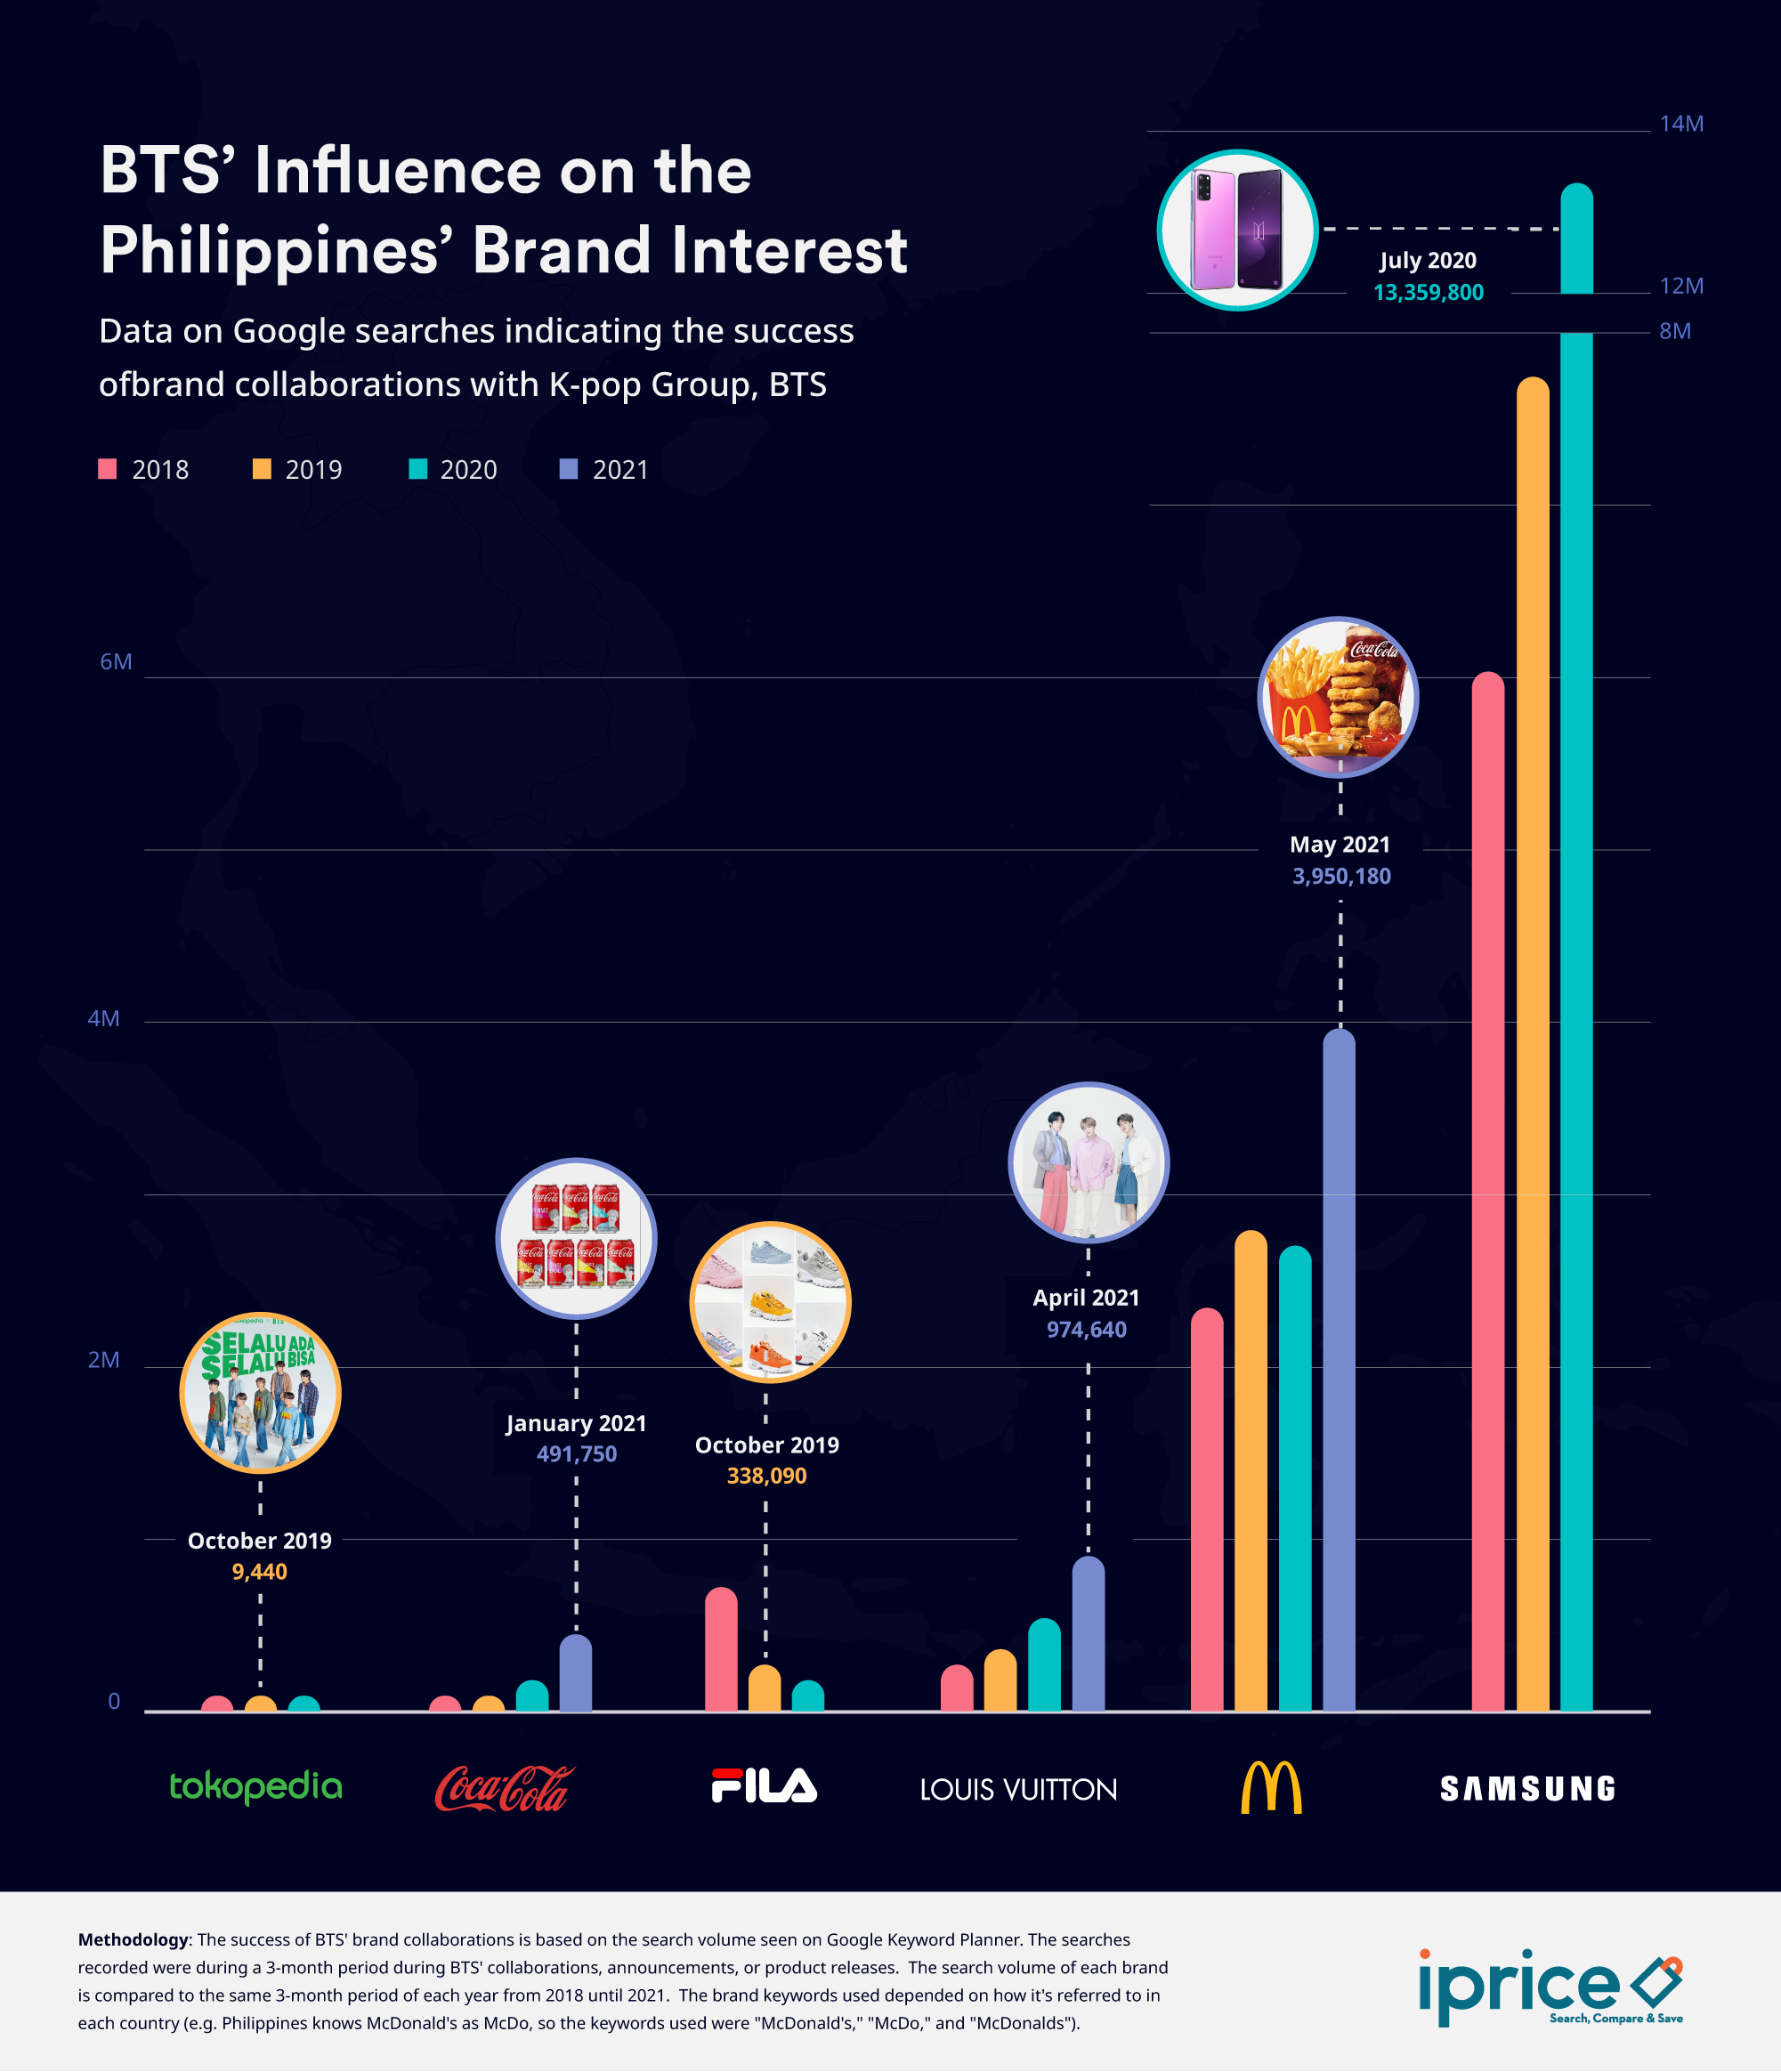 BTS' most successful brand endorsements in terms of interest